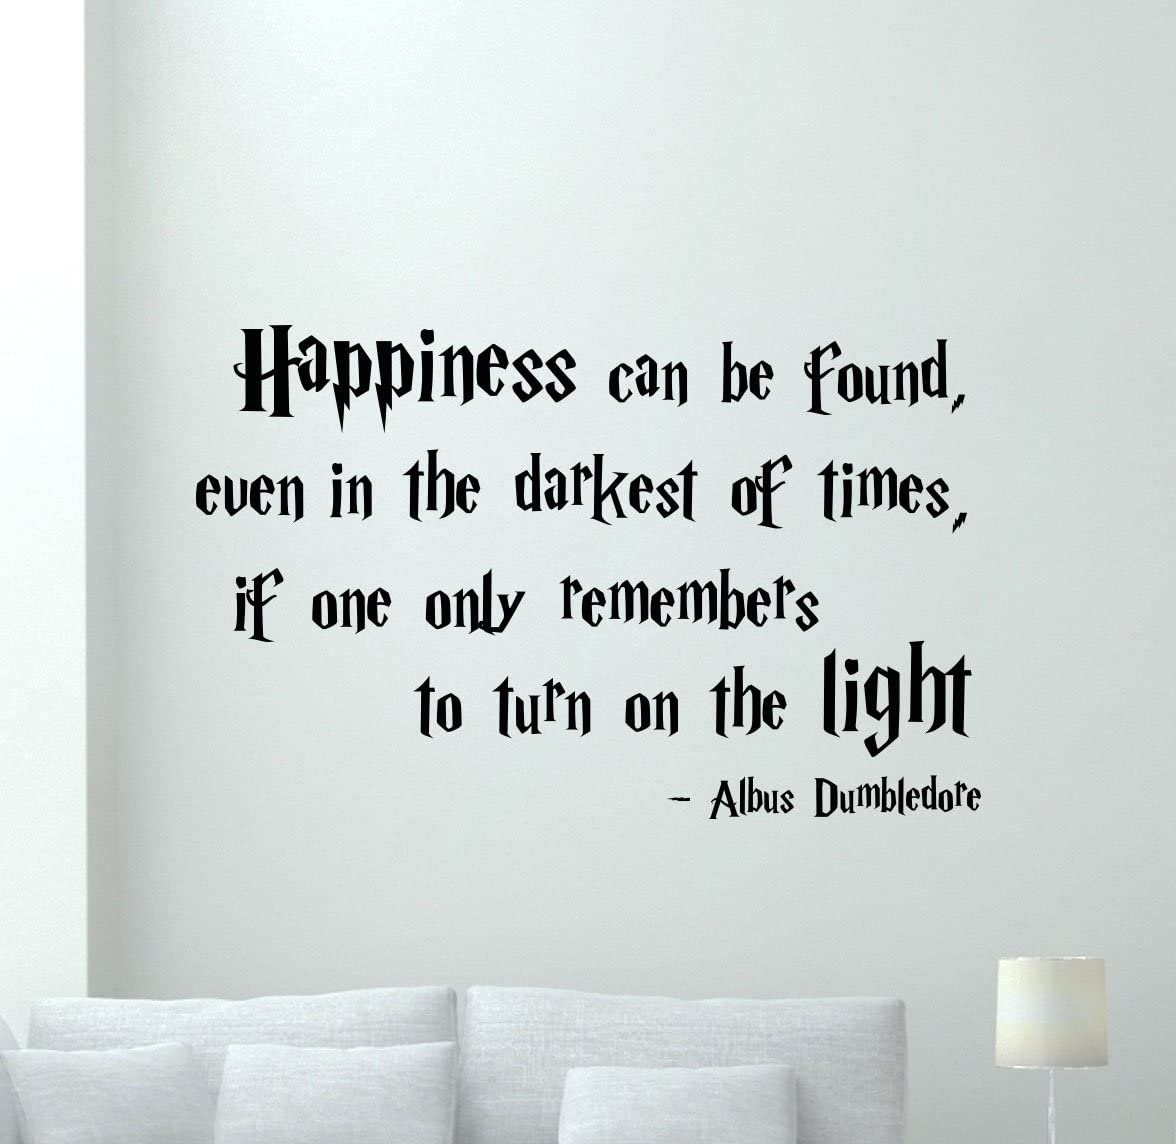 com harry potter quotes wall decal happiness can be found